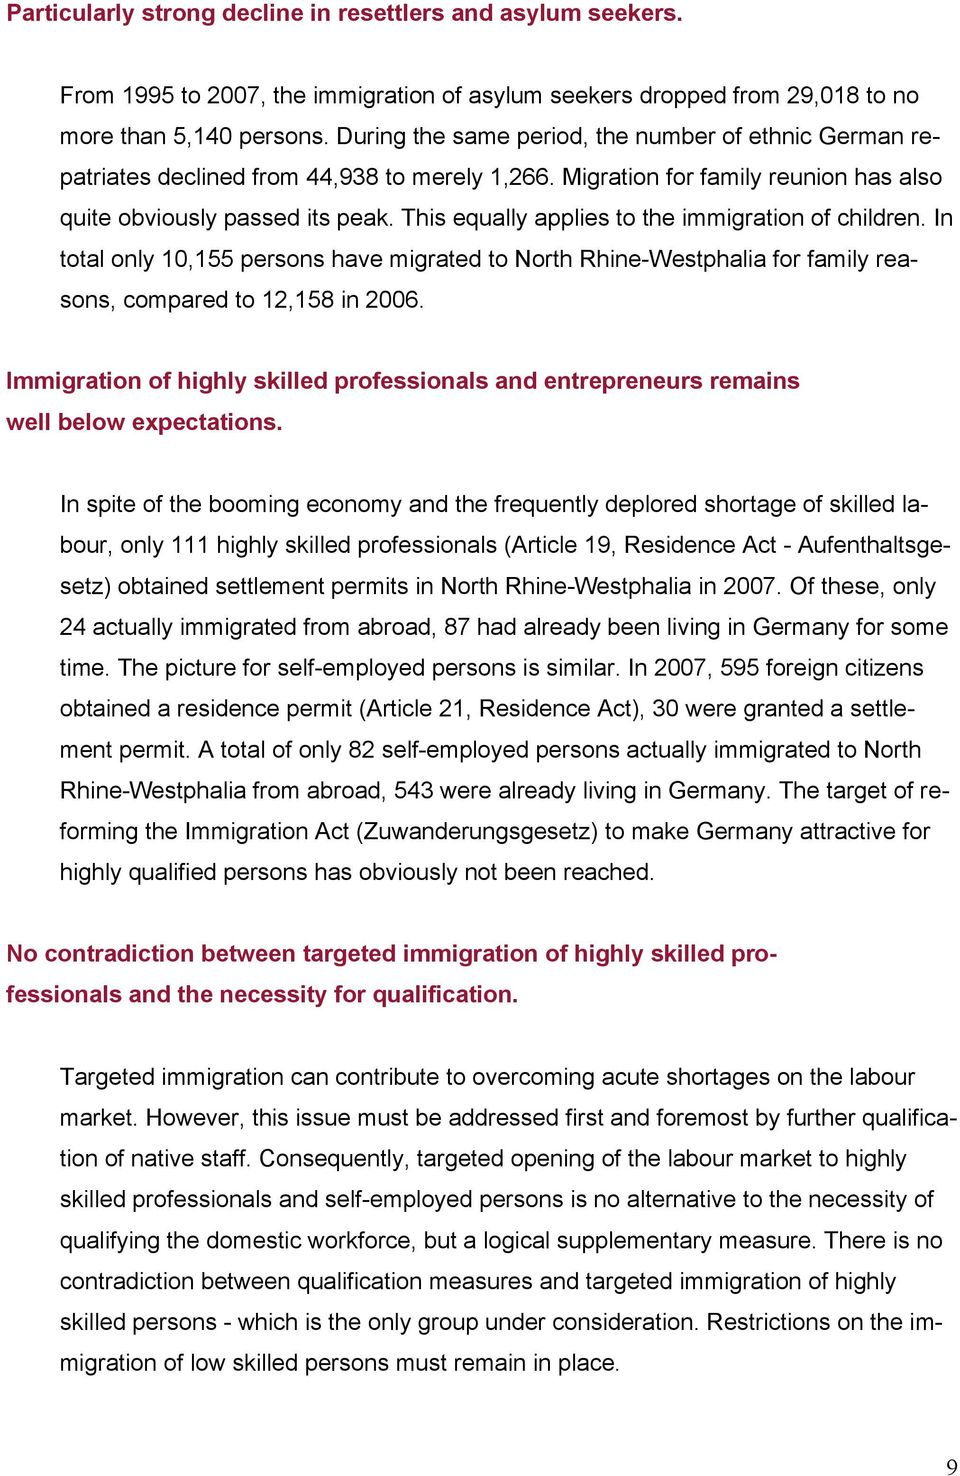 This equally applies to the immigration of children. In total only 10,155 persons have migrated to North Rhine-Westphalia for family reasons, compared to 12,158 in 2006.